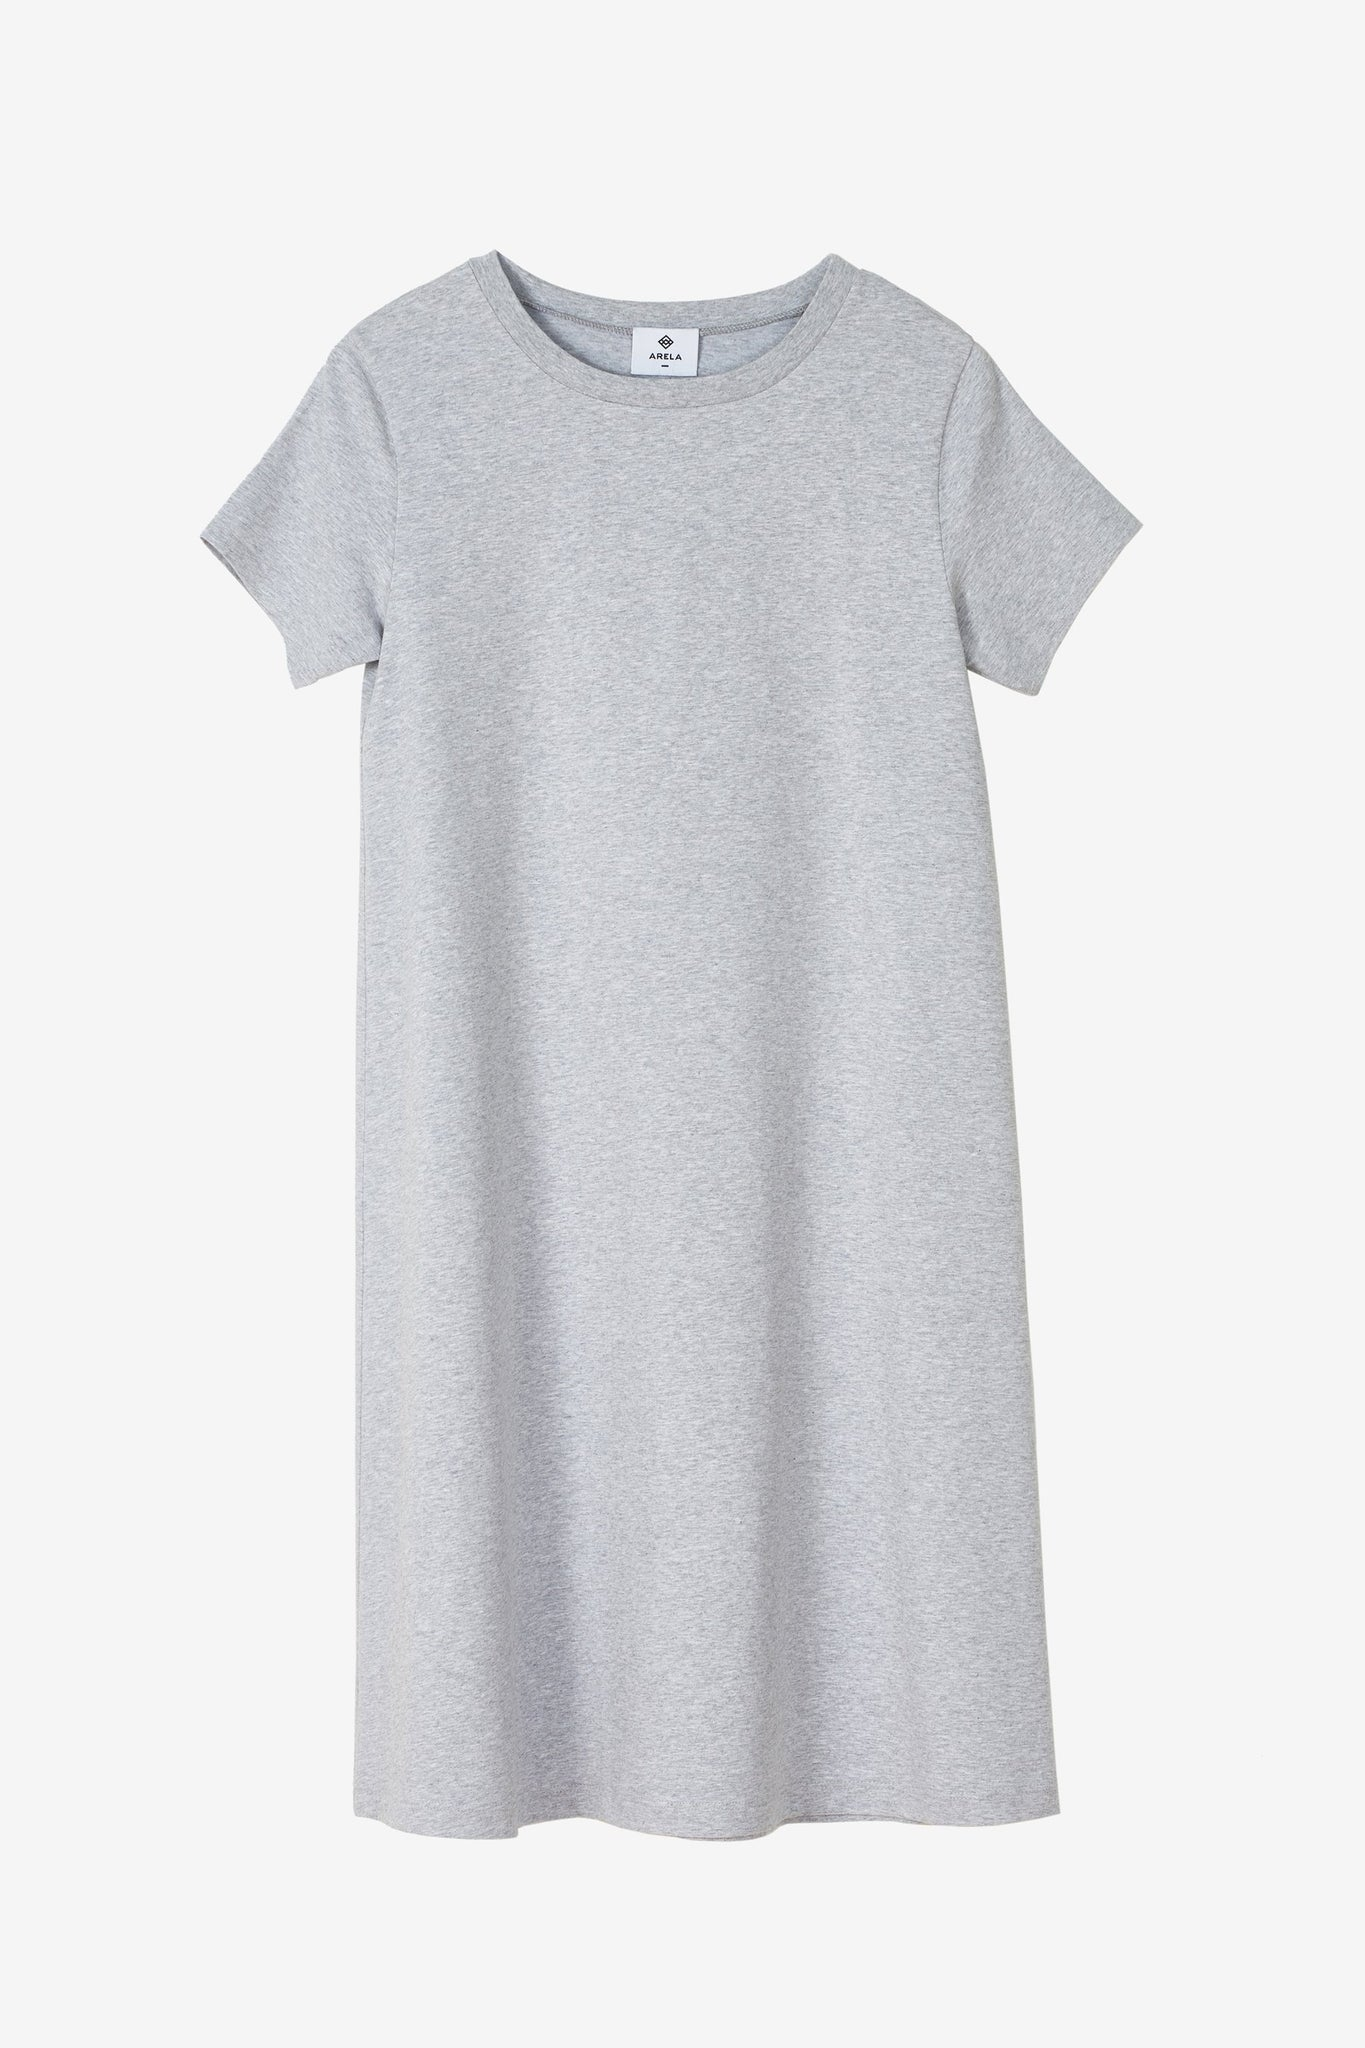 Kimsy t-shirt dress in grey